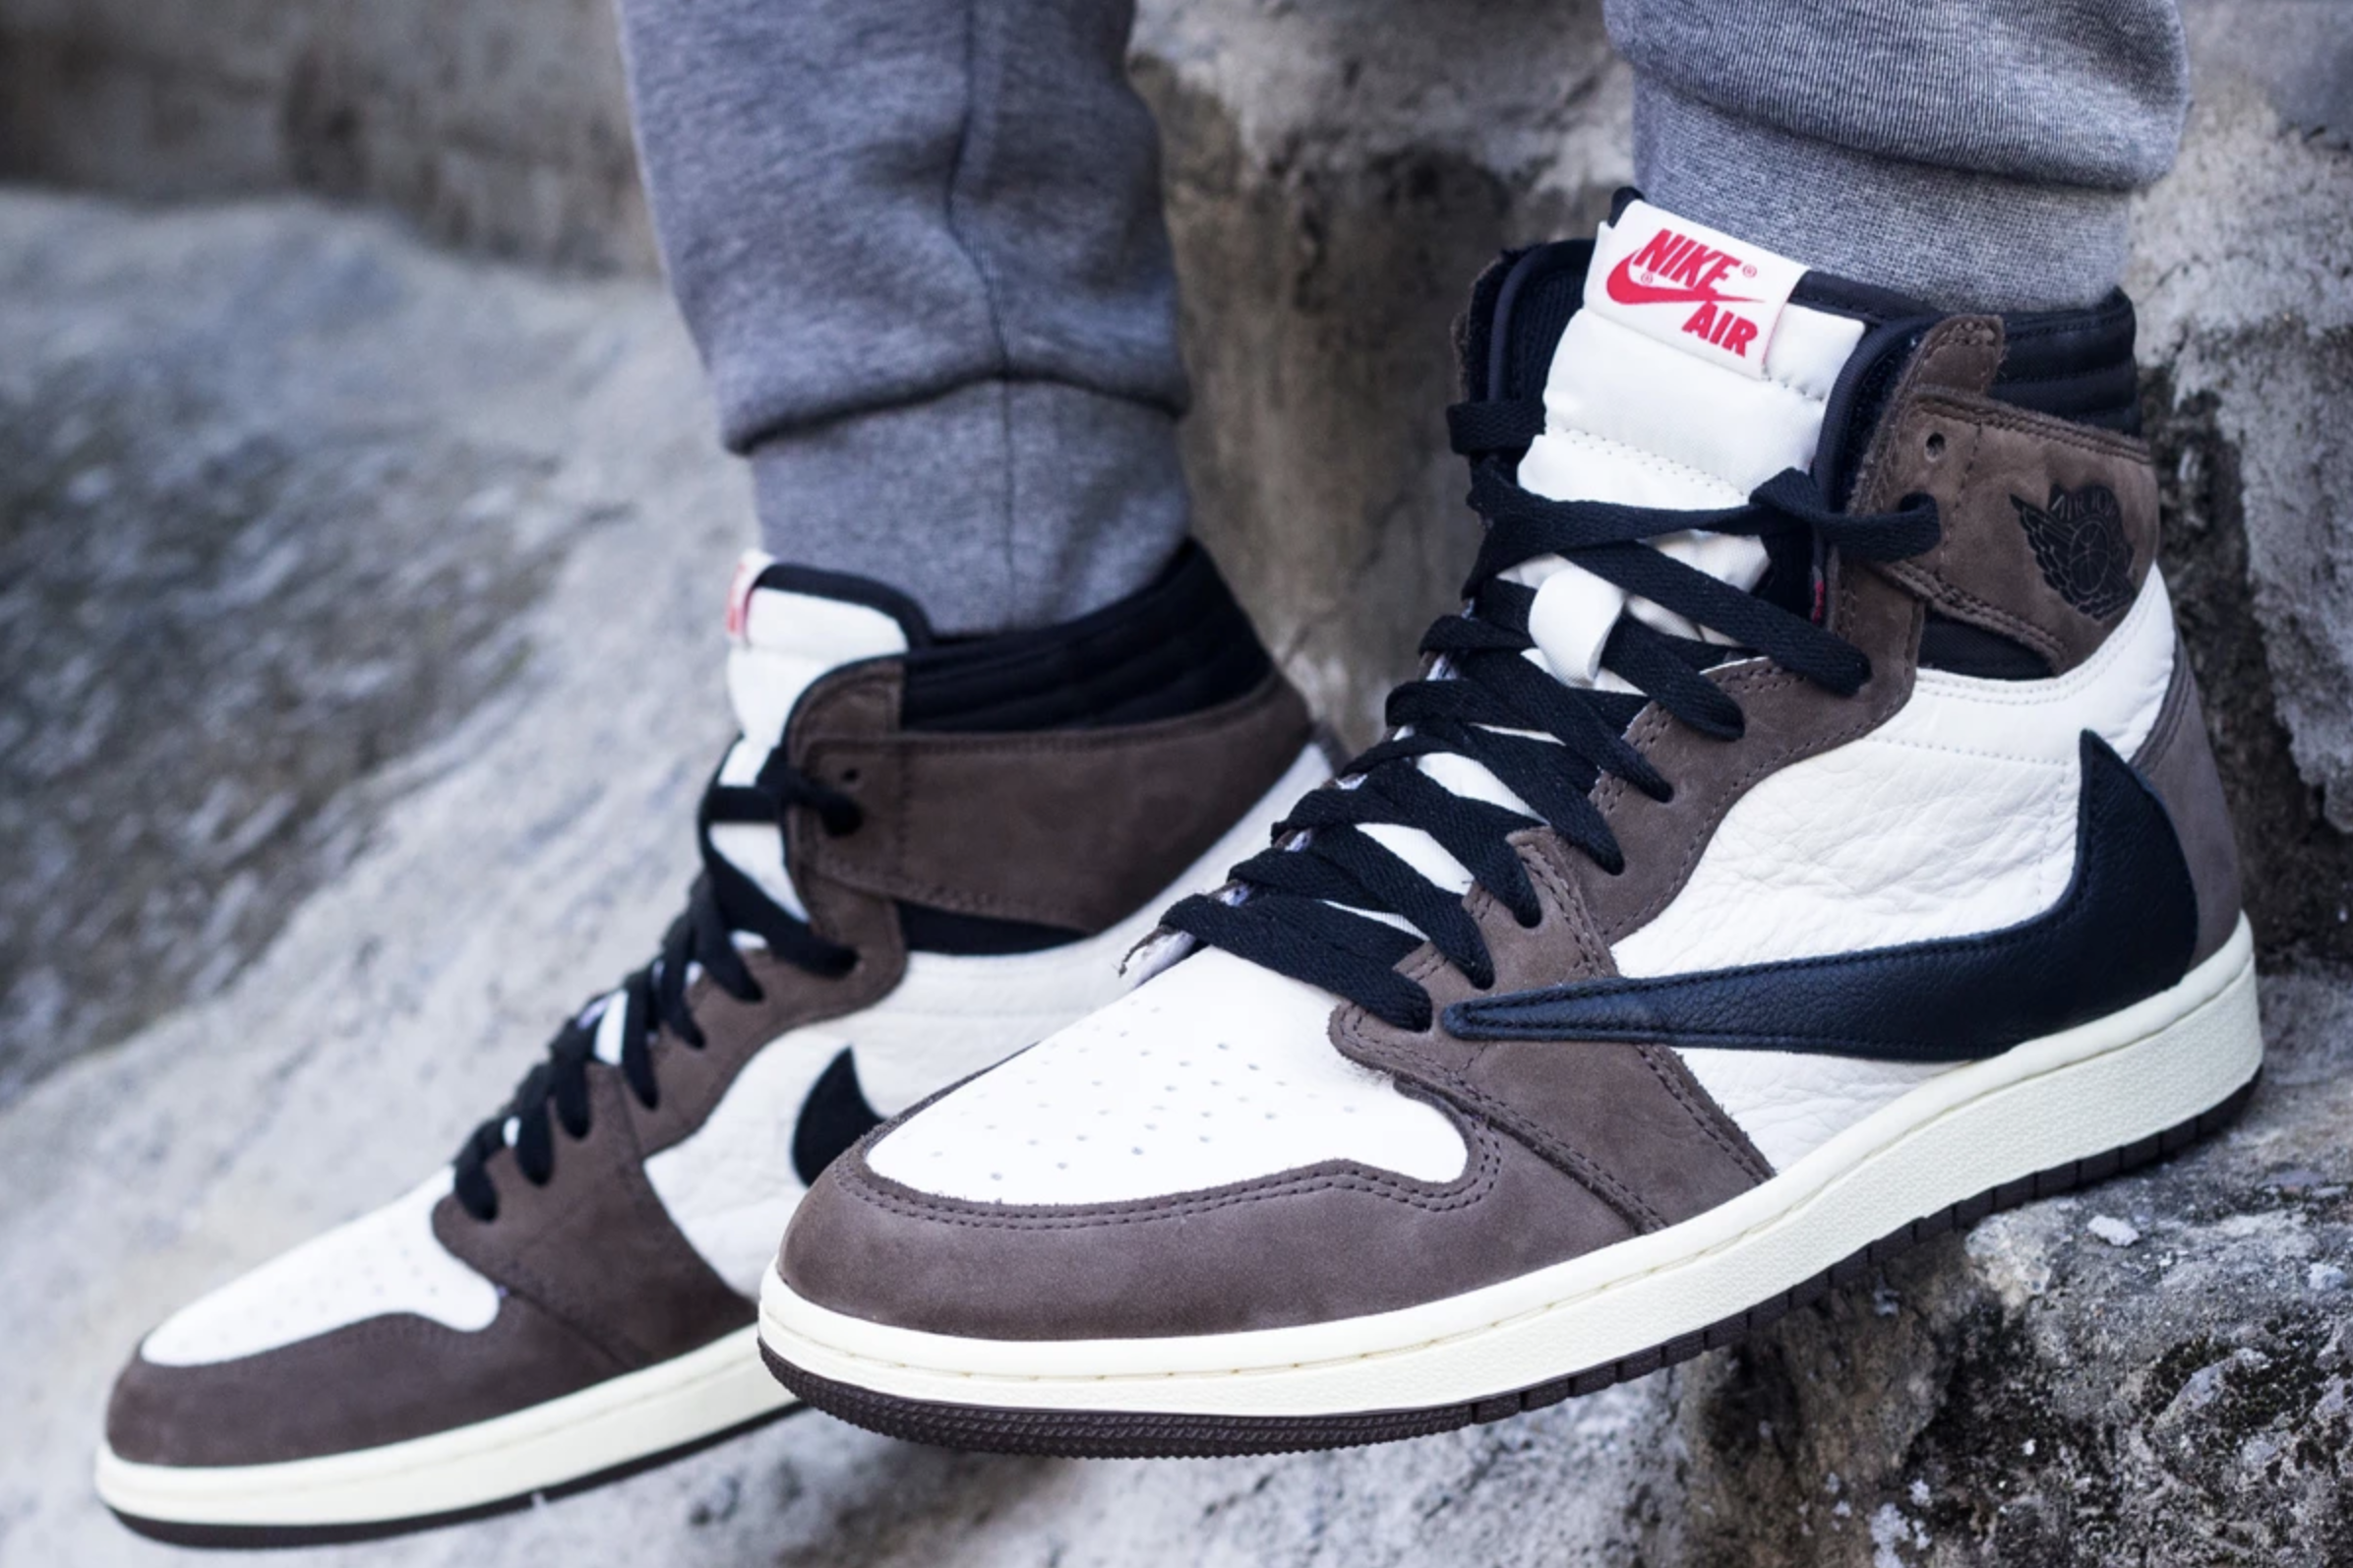 Discover the new images of the Air Jordan 1 Cactus Jack by Travis 2392x1594